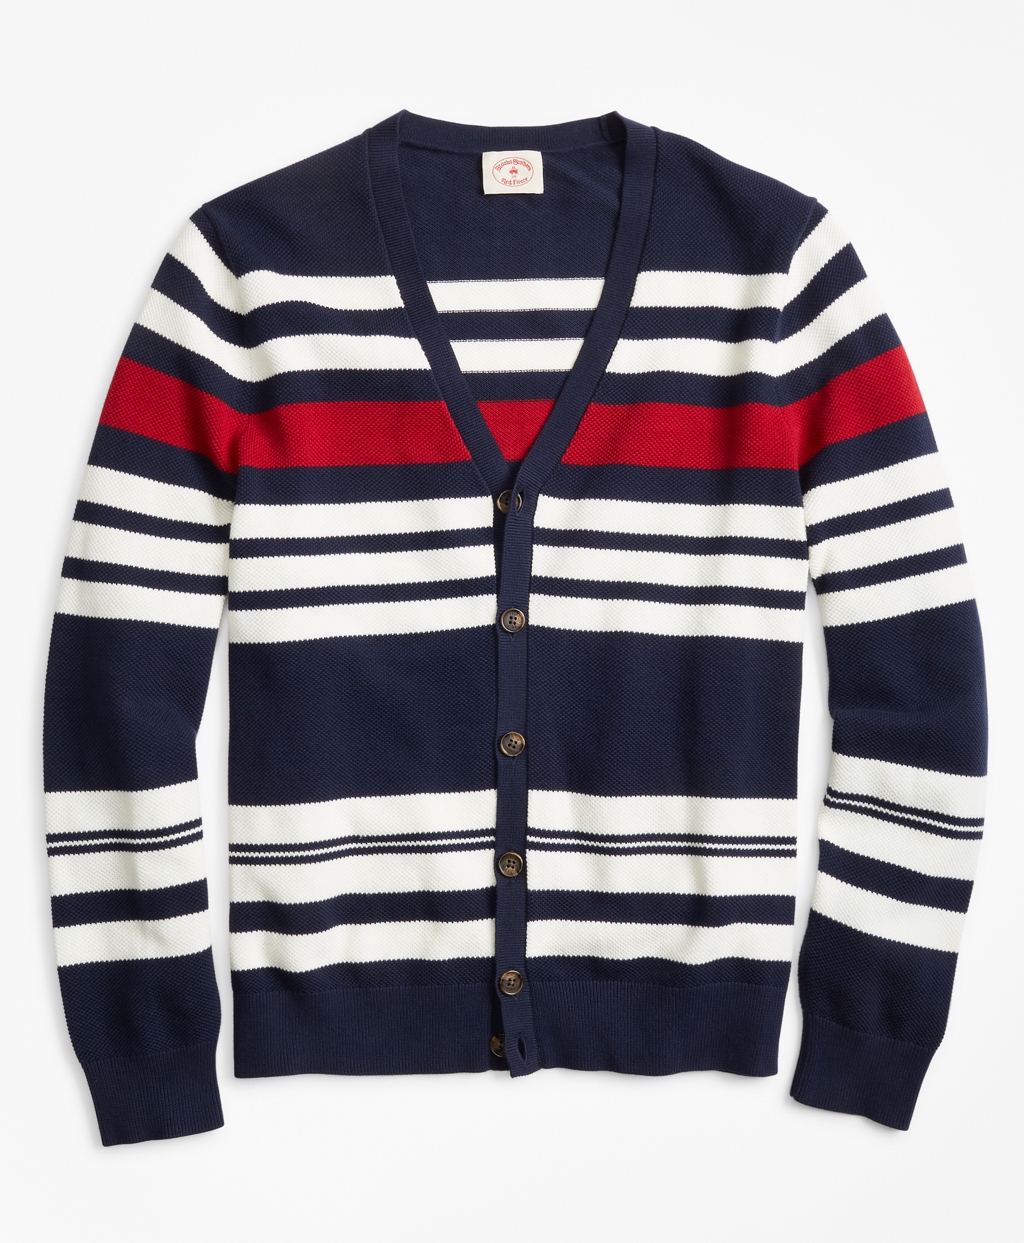 Men's Vintage Sweaters – 1920s to 1960s Retro Jumpers Brooks Brothers Mens Striped Pique Cardigan $69.50 AT vintagedancer.com